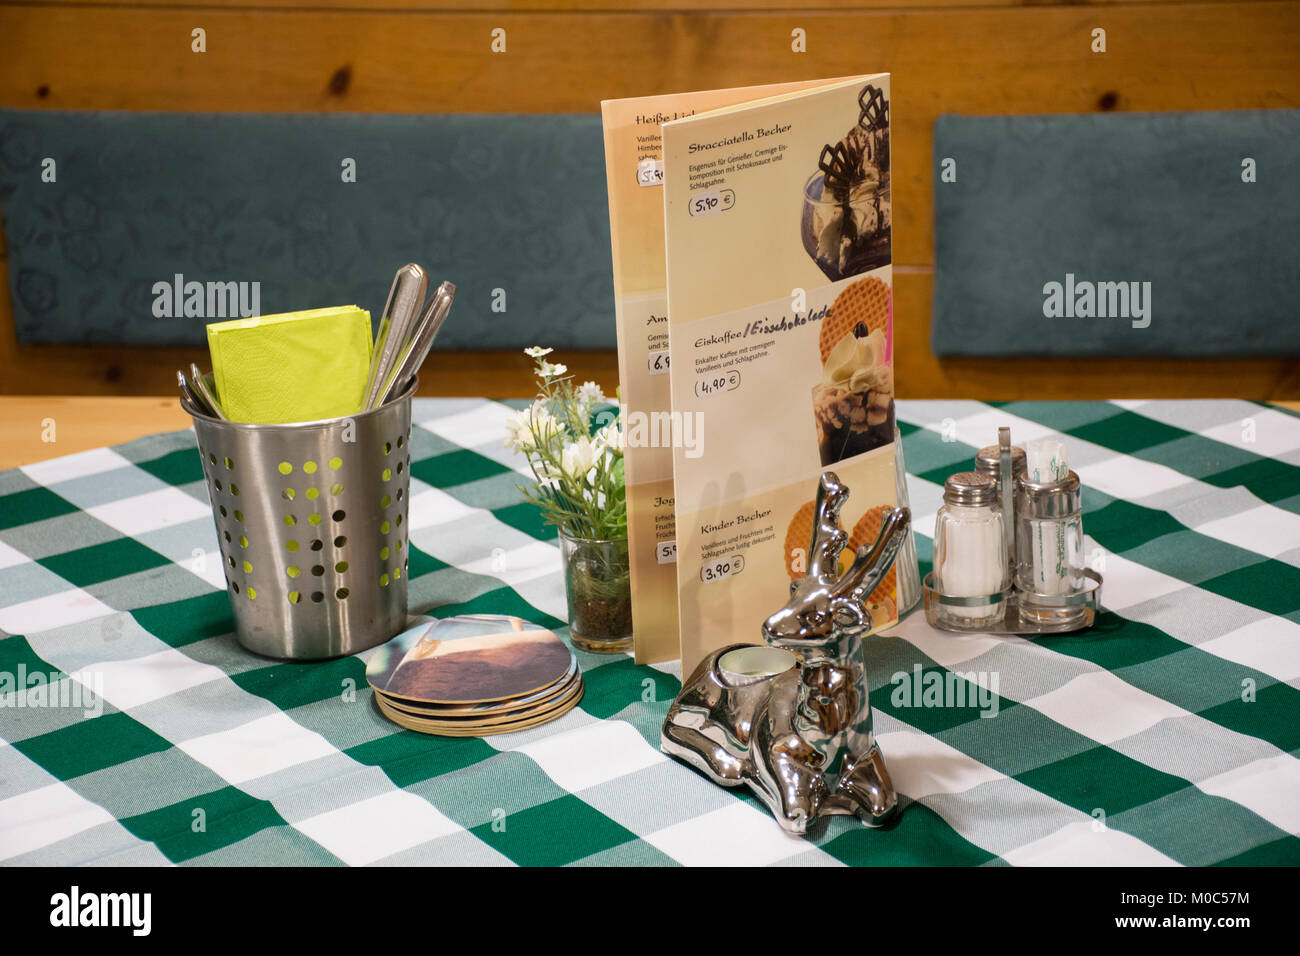 Dining Accessories For Eat On Table In Dining Room At Restaurant In - Restaurant table accessories